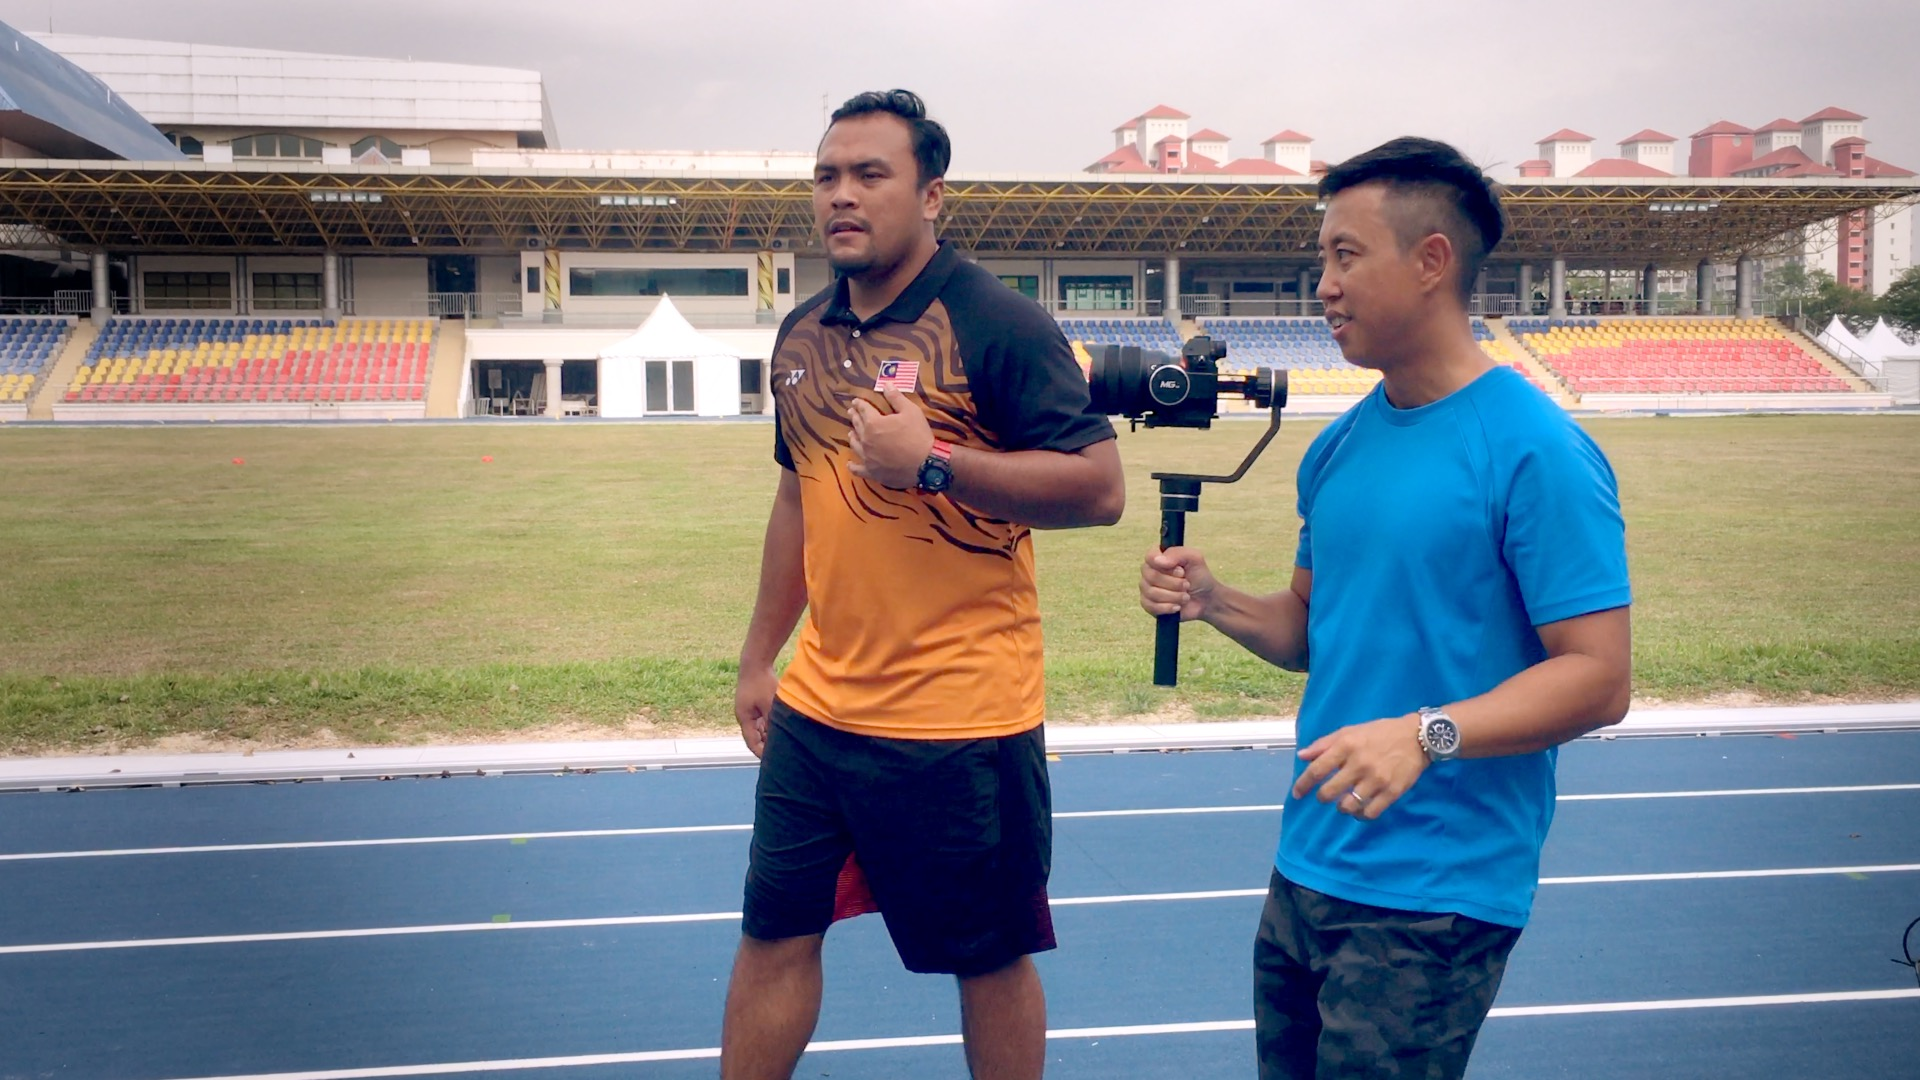 Filming with Ziyad Zolkefli, world record holder for shot put and proudly Malaysian